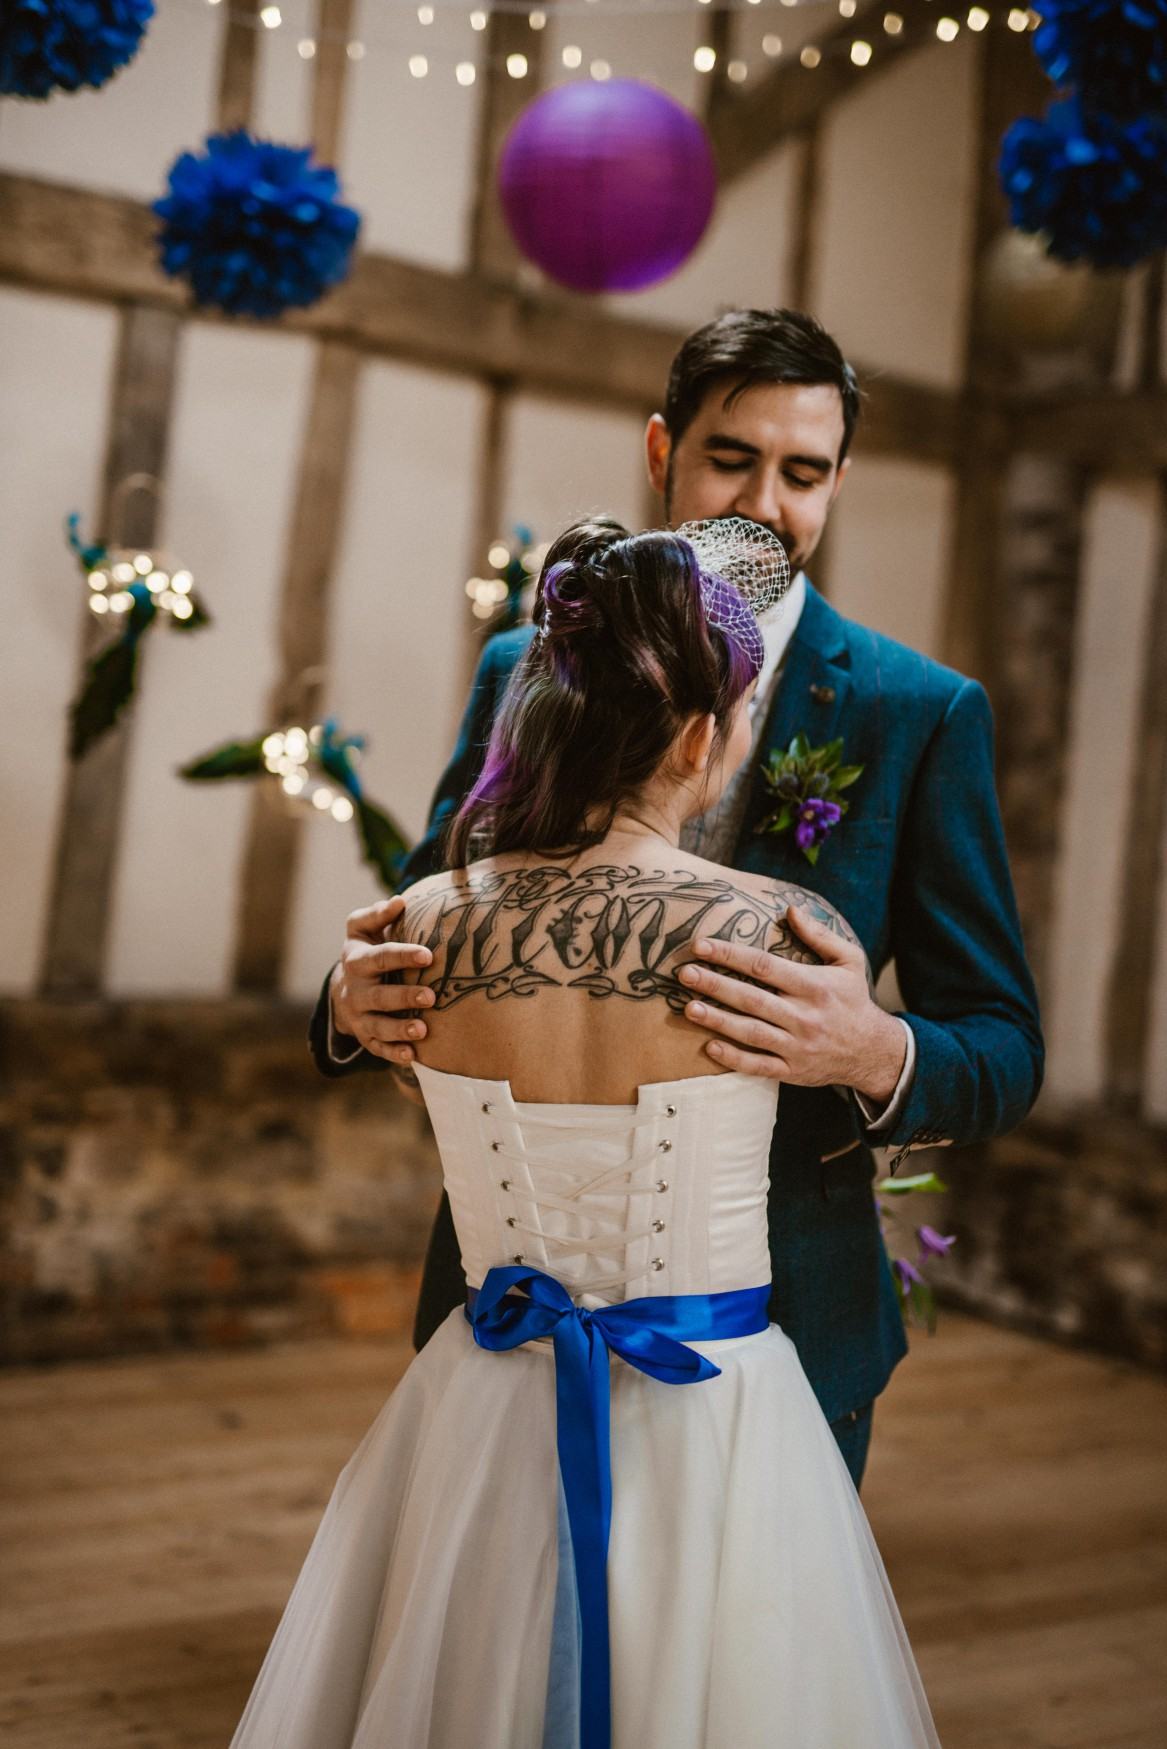 Peacock barns - alternative unconventional wedding photoshoot - rustic decadent - first dance - tattooed bride